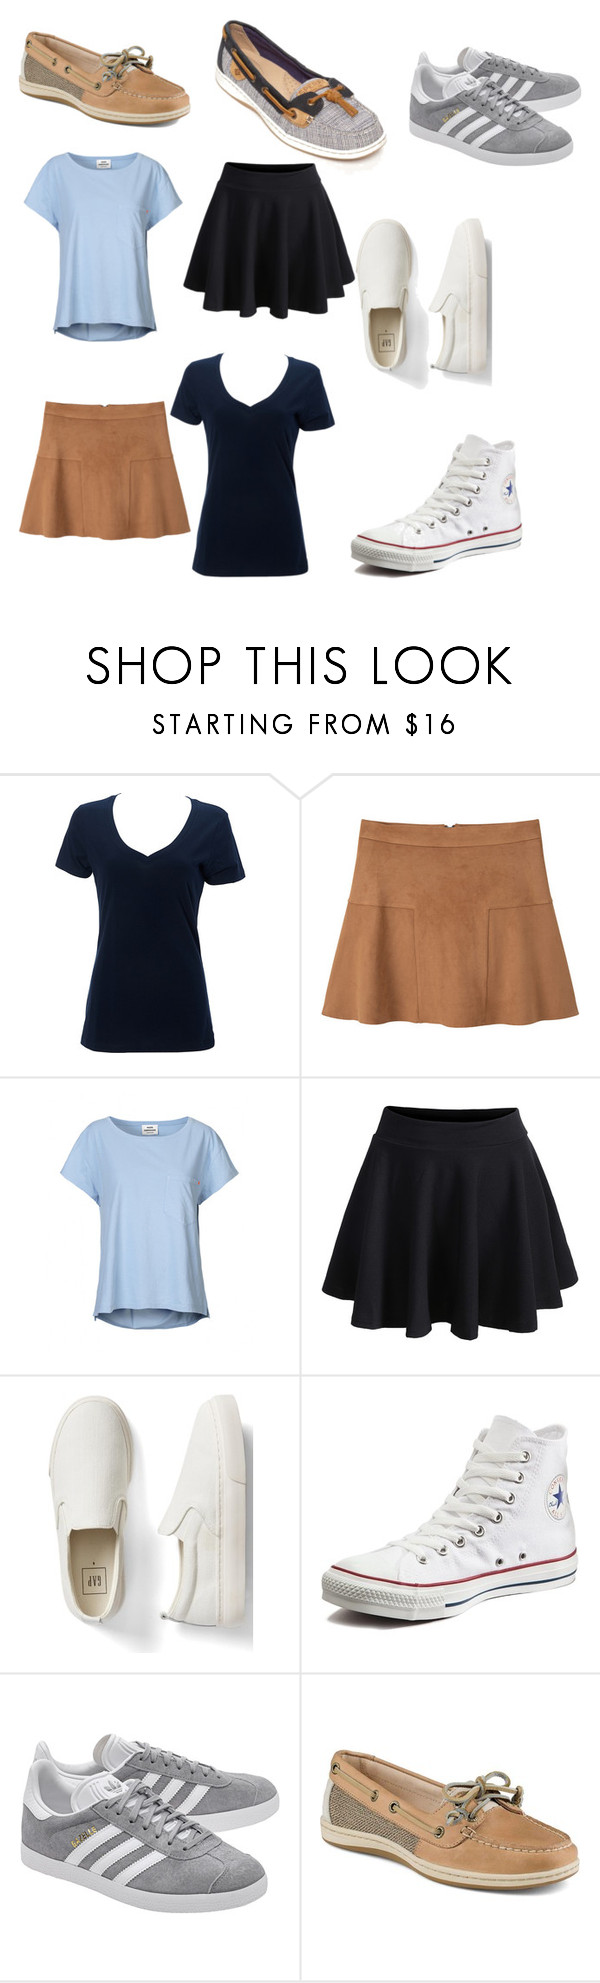 """""""School day 3"""" by sophiad3 on Polyvore featuring Simplex Apparel, MANGO, Mads Nørgaard, WithChic, Gap, Converse, adidas Originals and Sperry"""